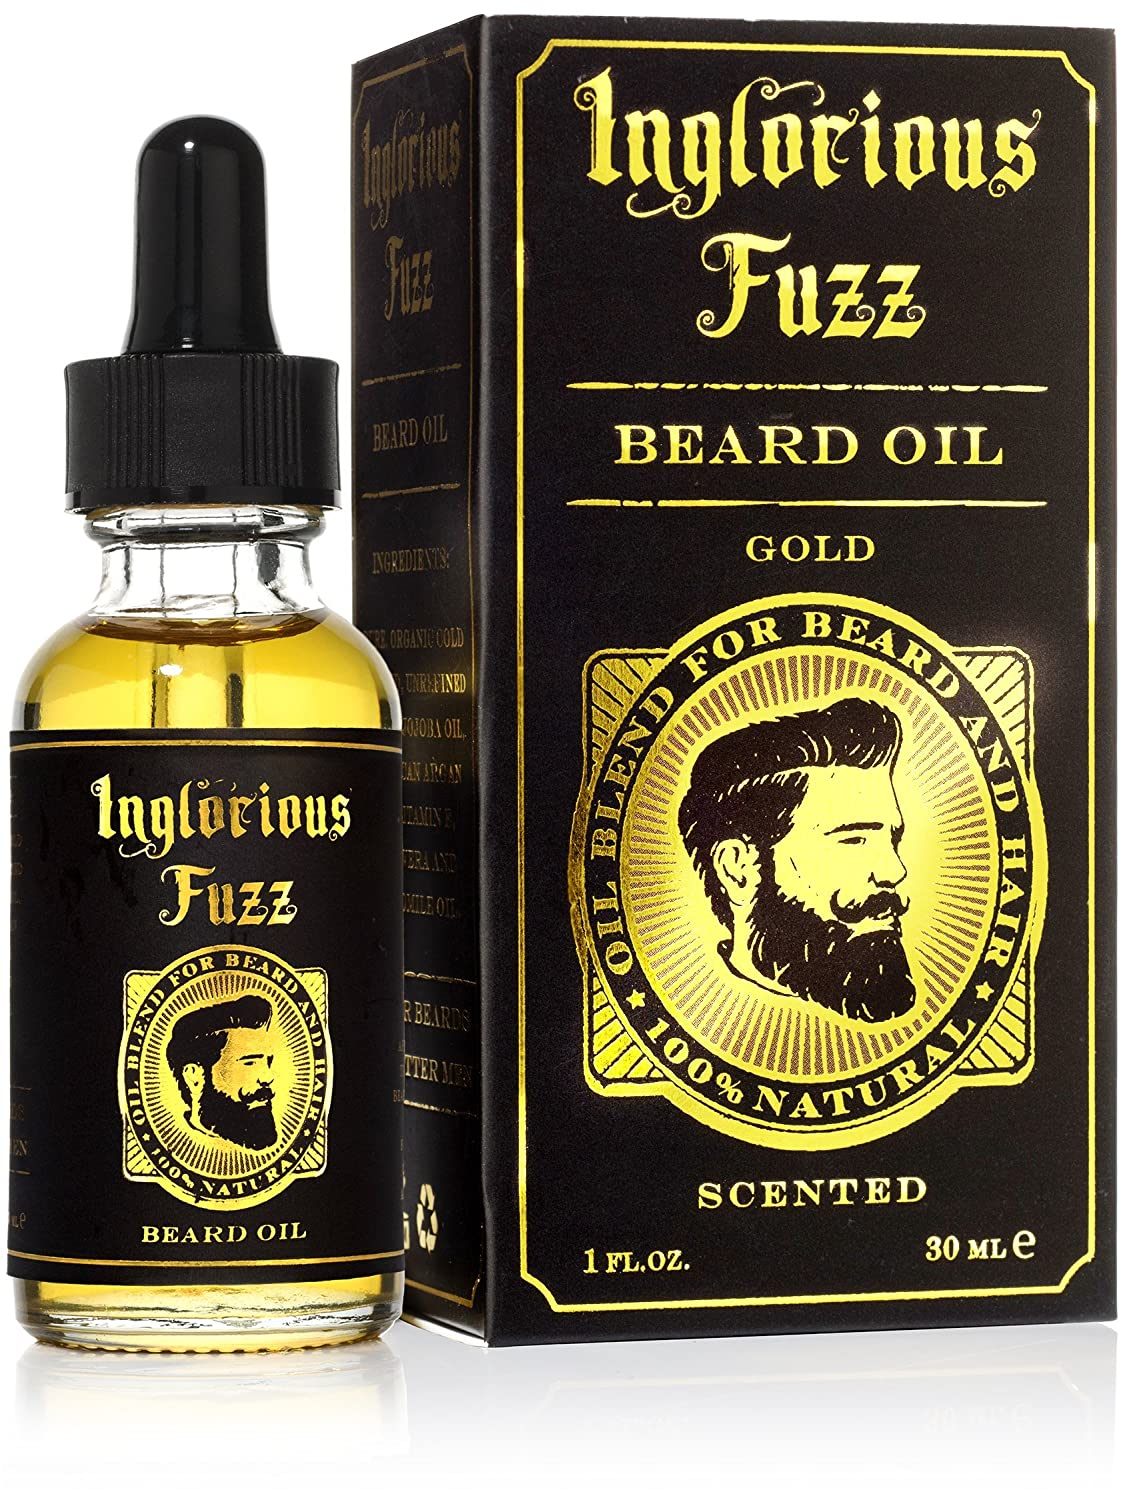 All New Inglorious Fuzz - Scented Beard Oil (Gold) Ollexir